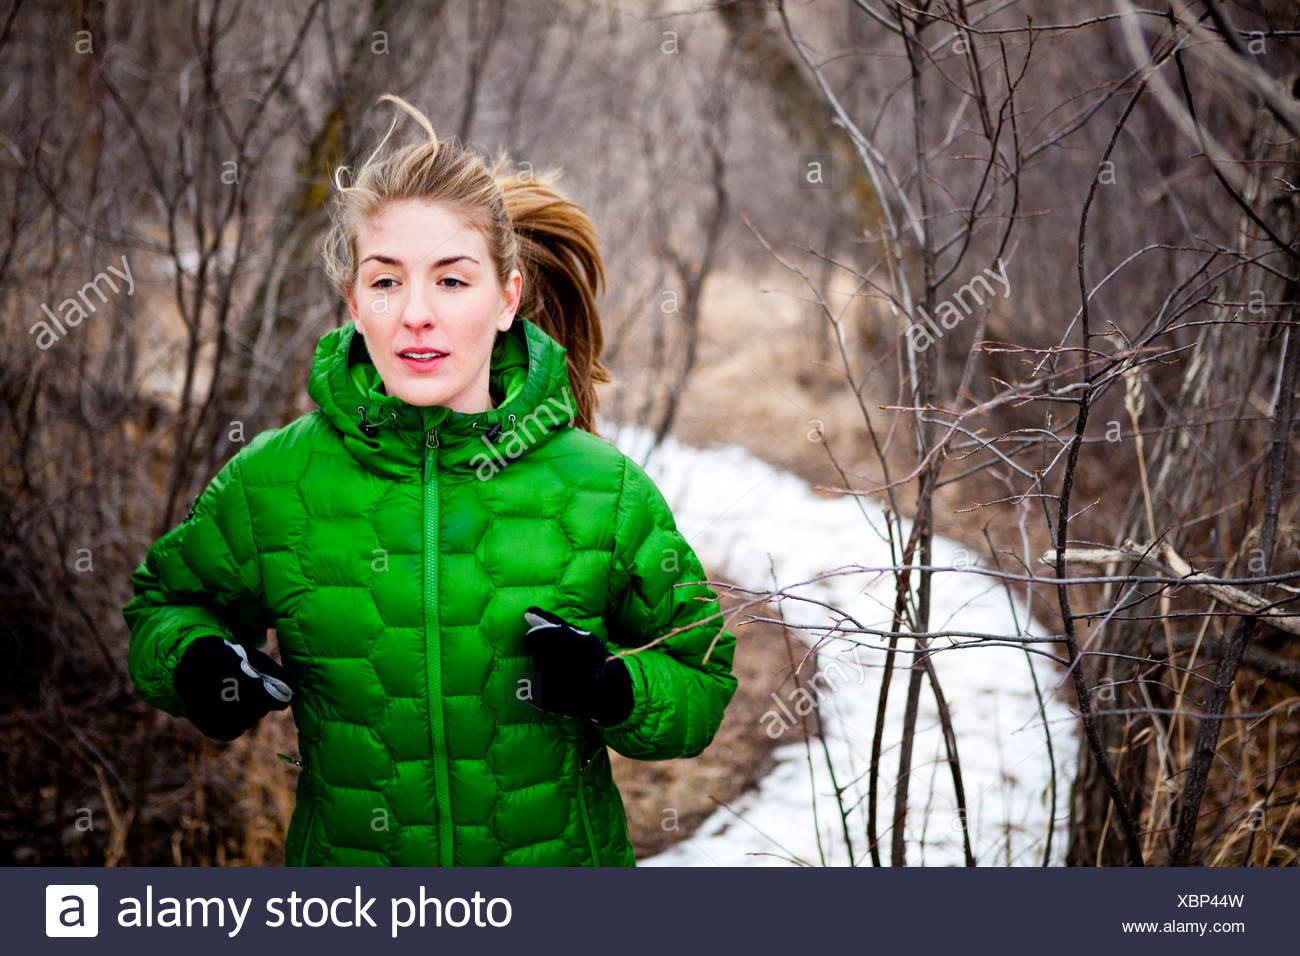 a young woman runs a along snow covered dirt trail through leafless deciduous trees just north of Dixon Reservoir, on a cold day - Stock Image